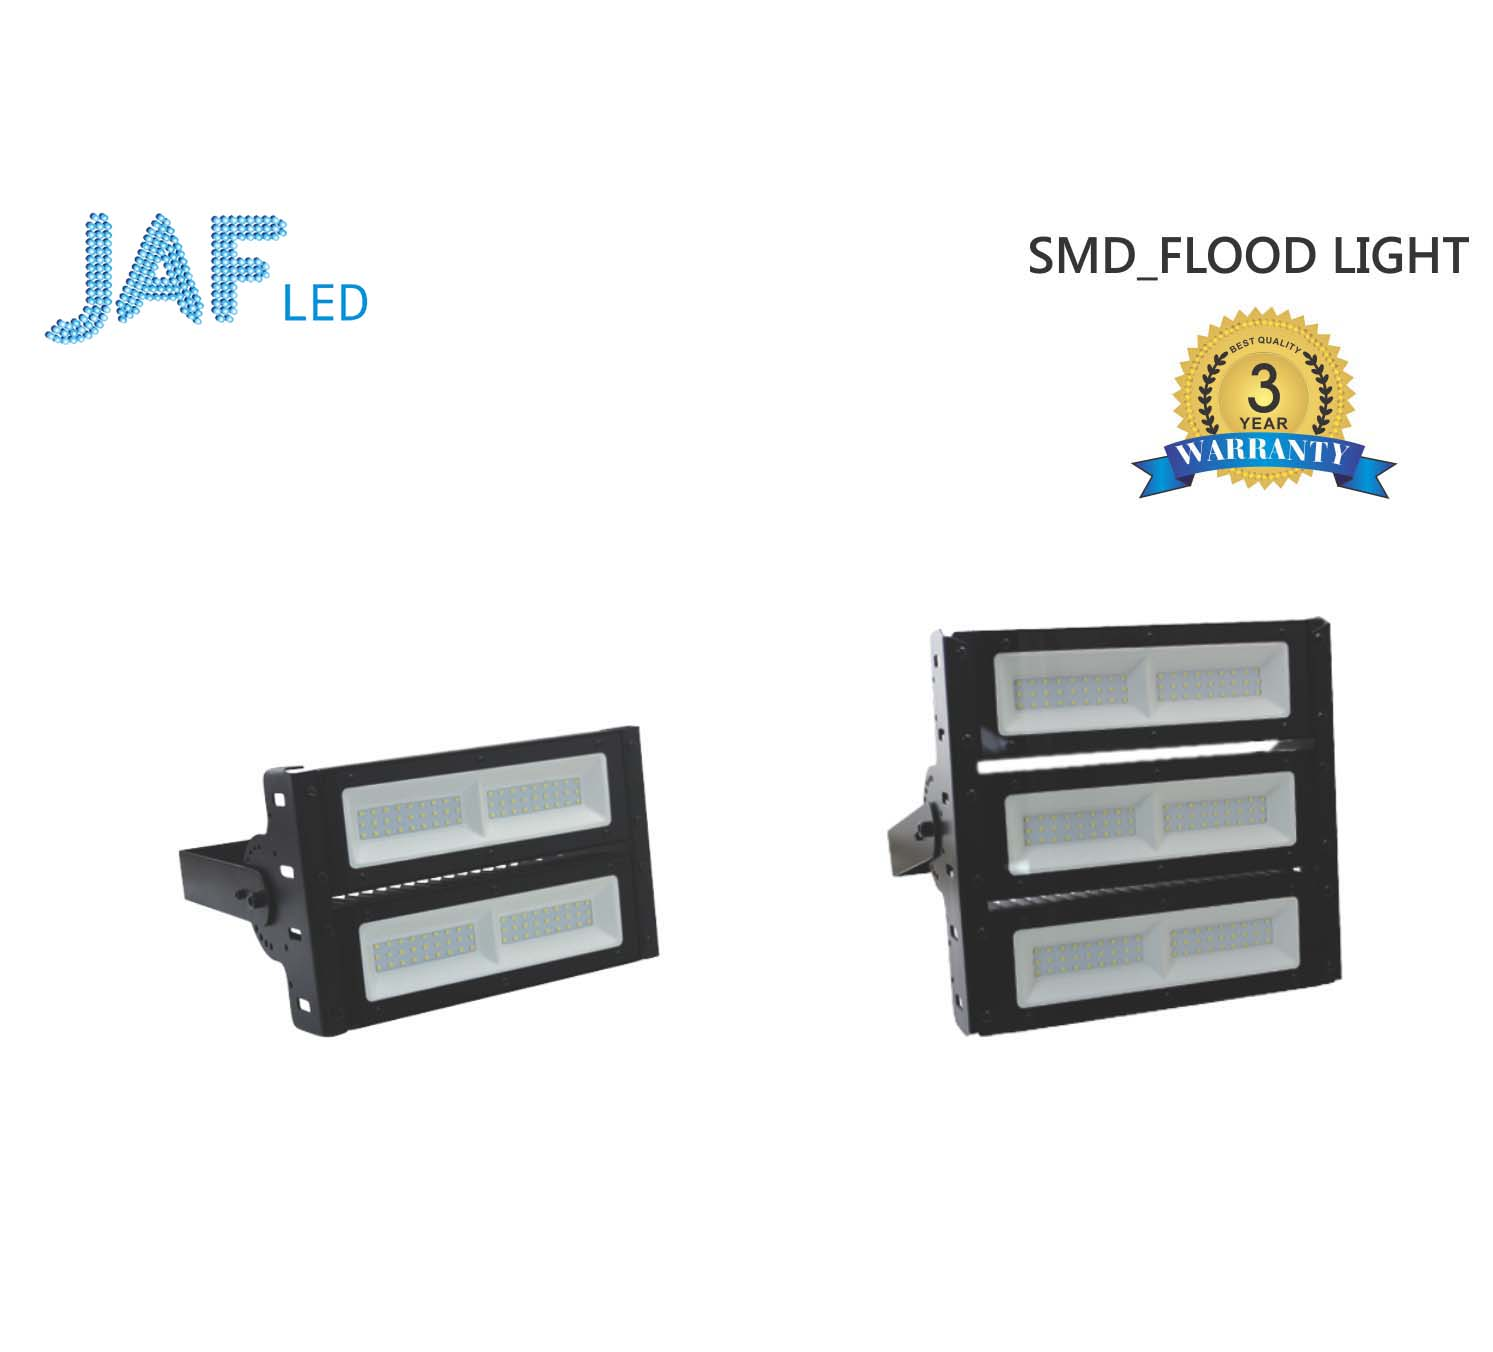 Wiiz MLF SMD Flood Light